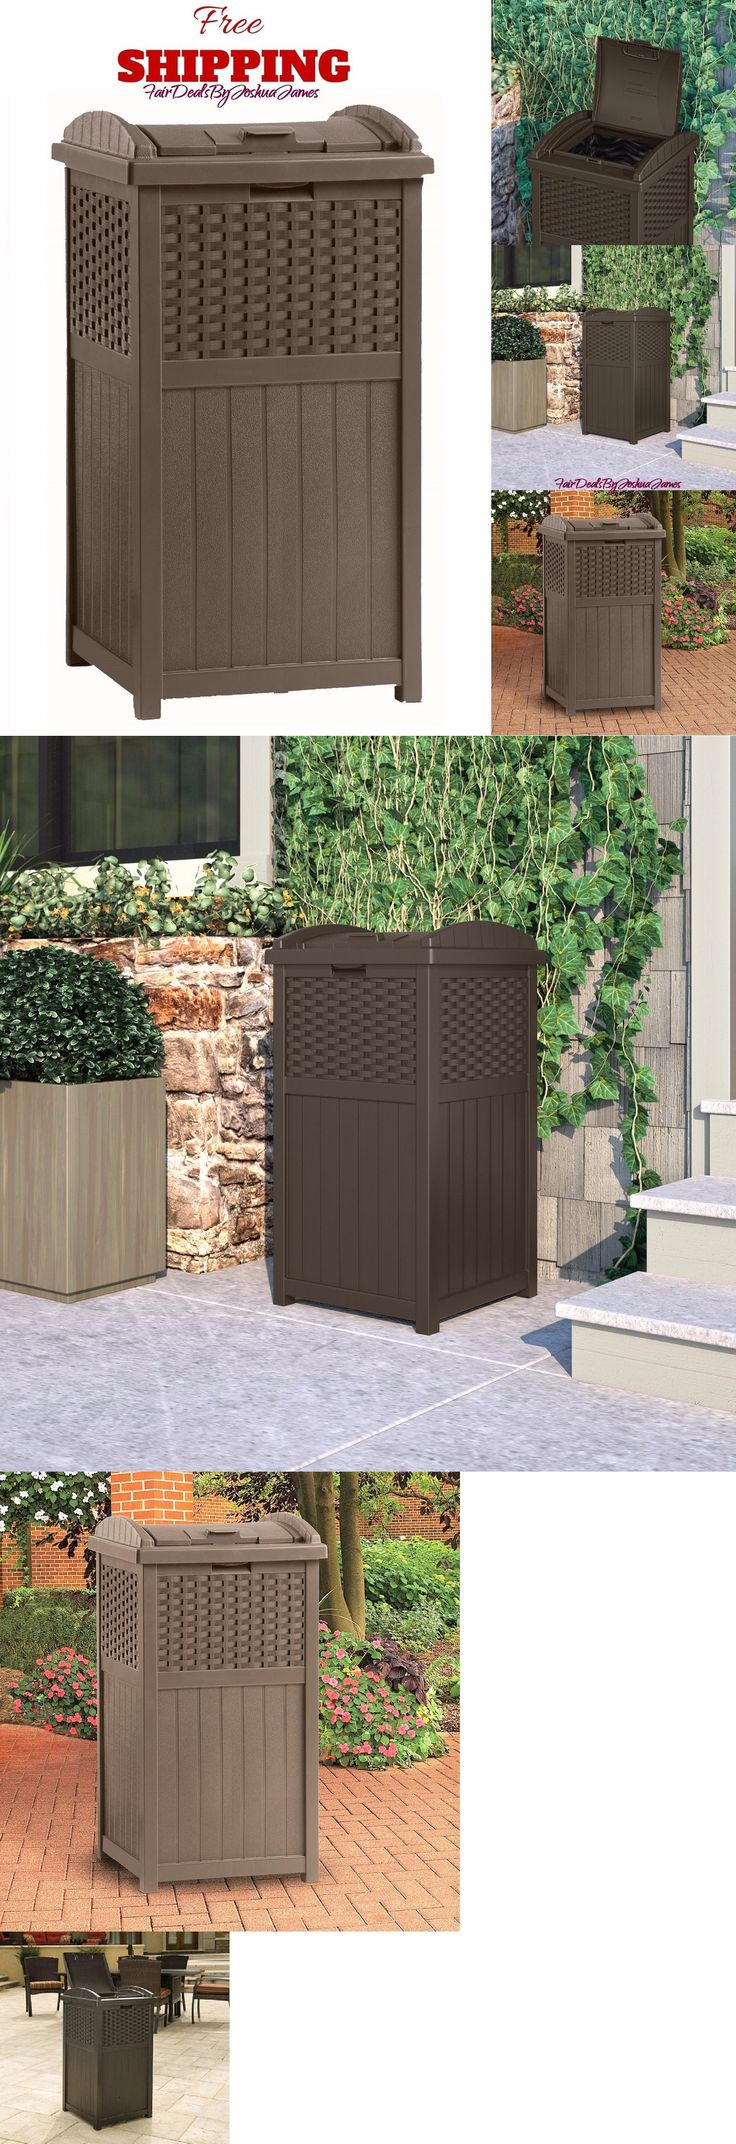 Trash Cans And Wastebaskets 20608: Home Outdoor Patio Trash Can Hideaway  Garden Decor Wicker Garbage